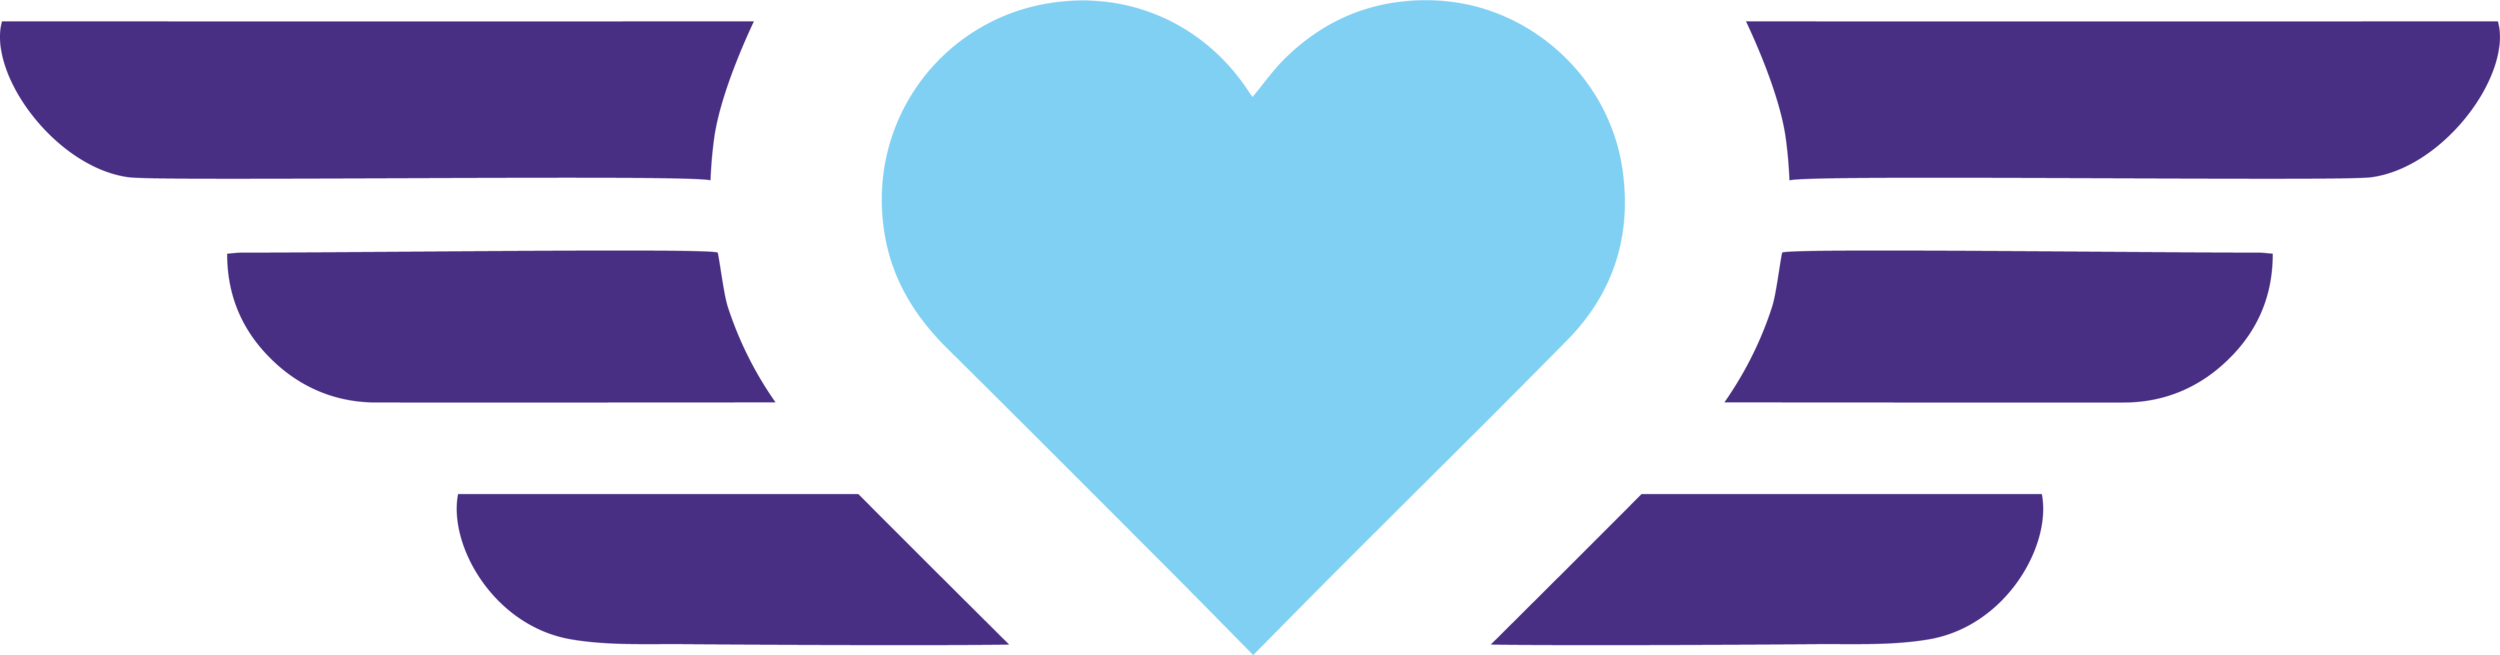 ARCHANGELS_PURPLE-WINGS-BLUE-HEART_ONLY.png